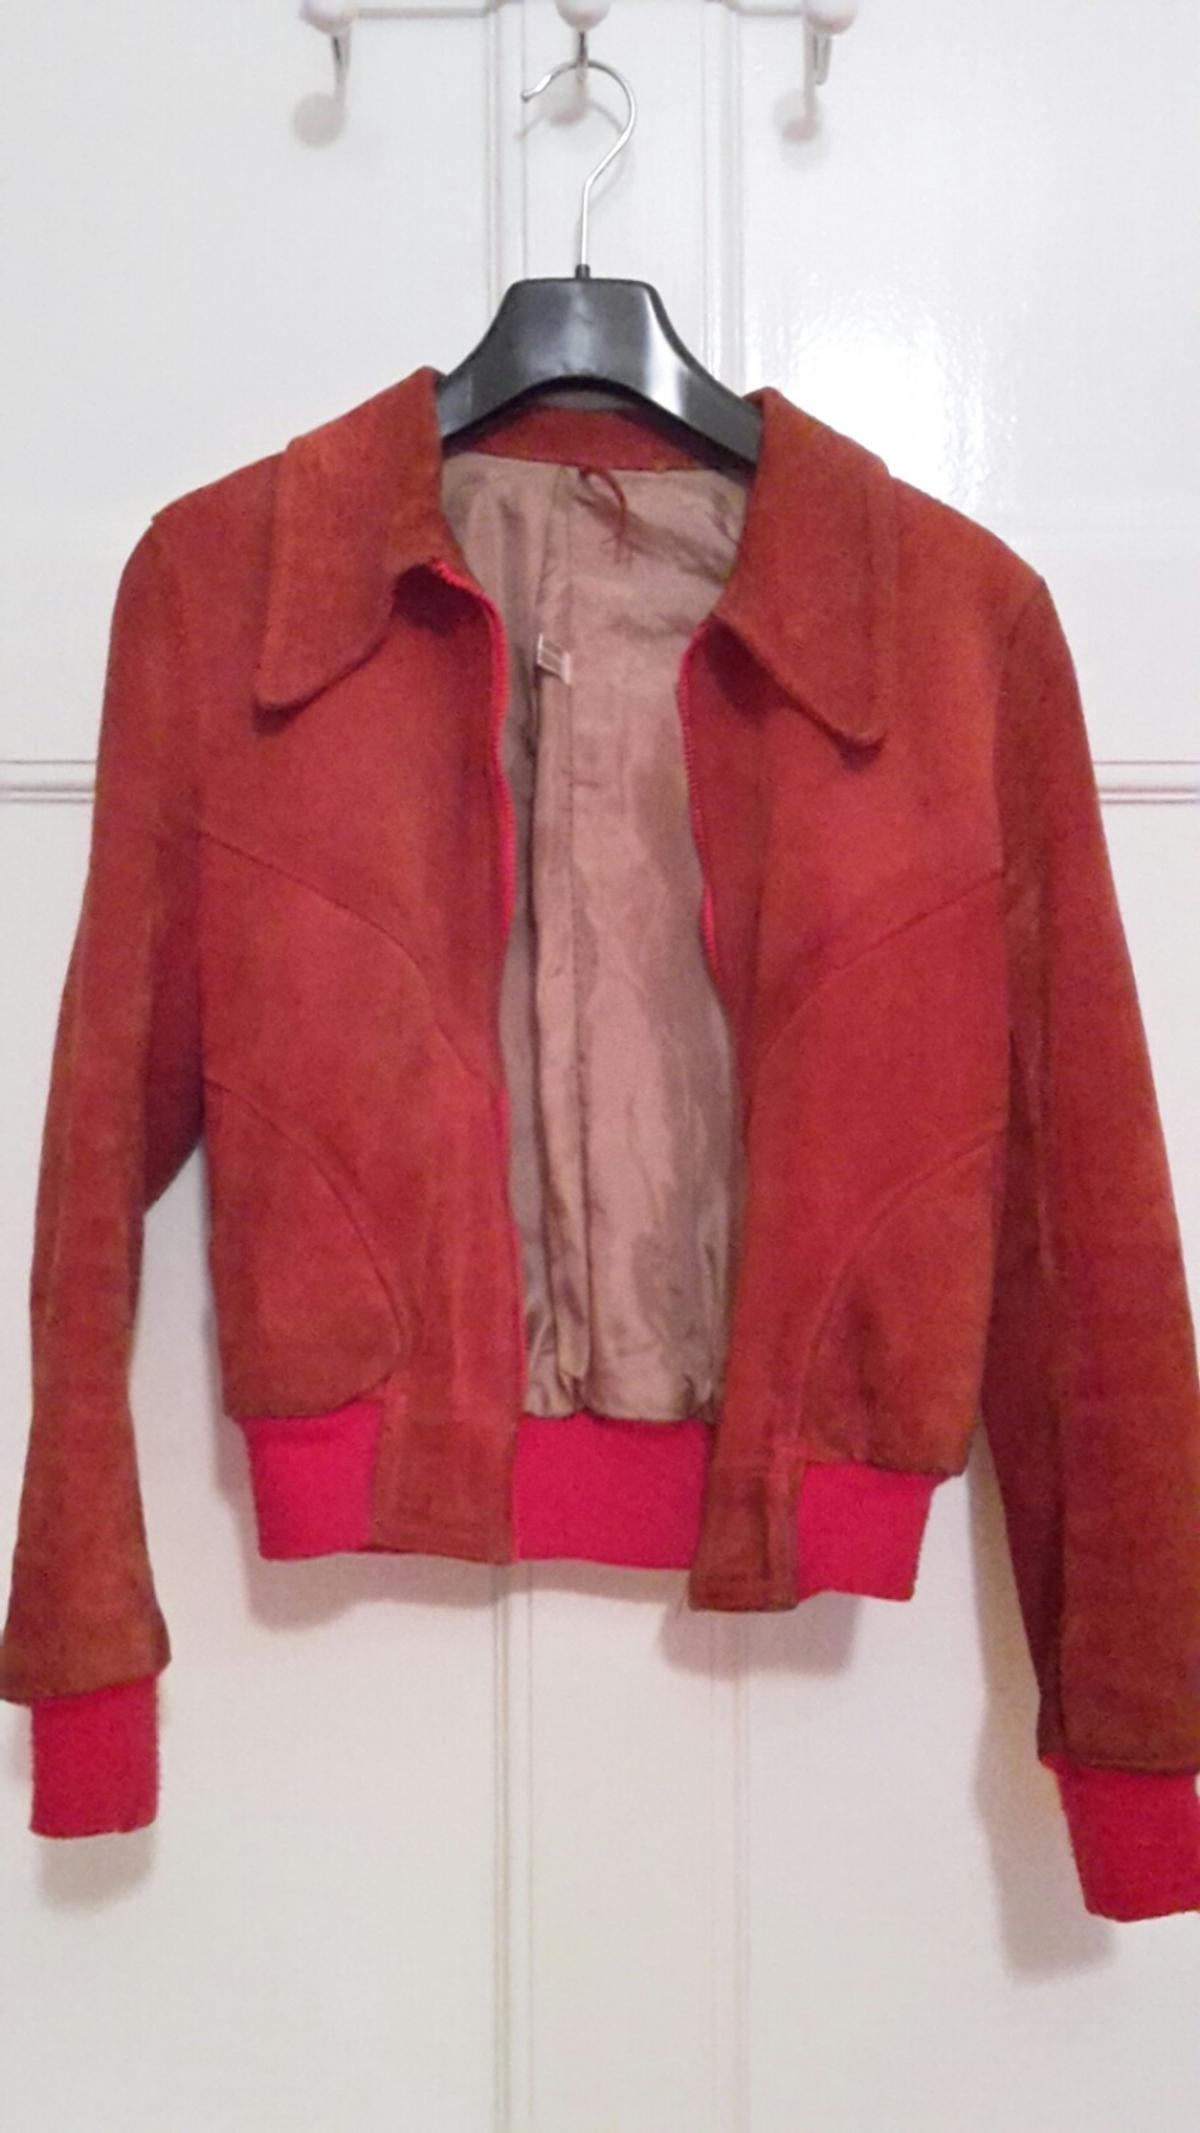 finest selection b6b78 cadb3 Damen Vintage Lederjacke 34/36 in 76135 Karlsruhe for €25.00 ...